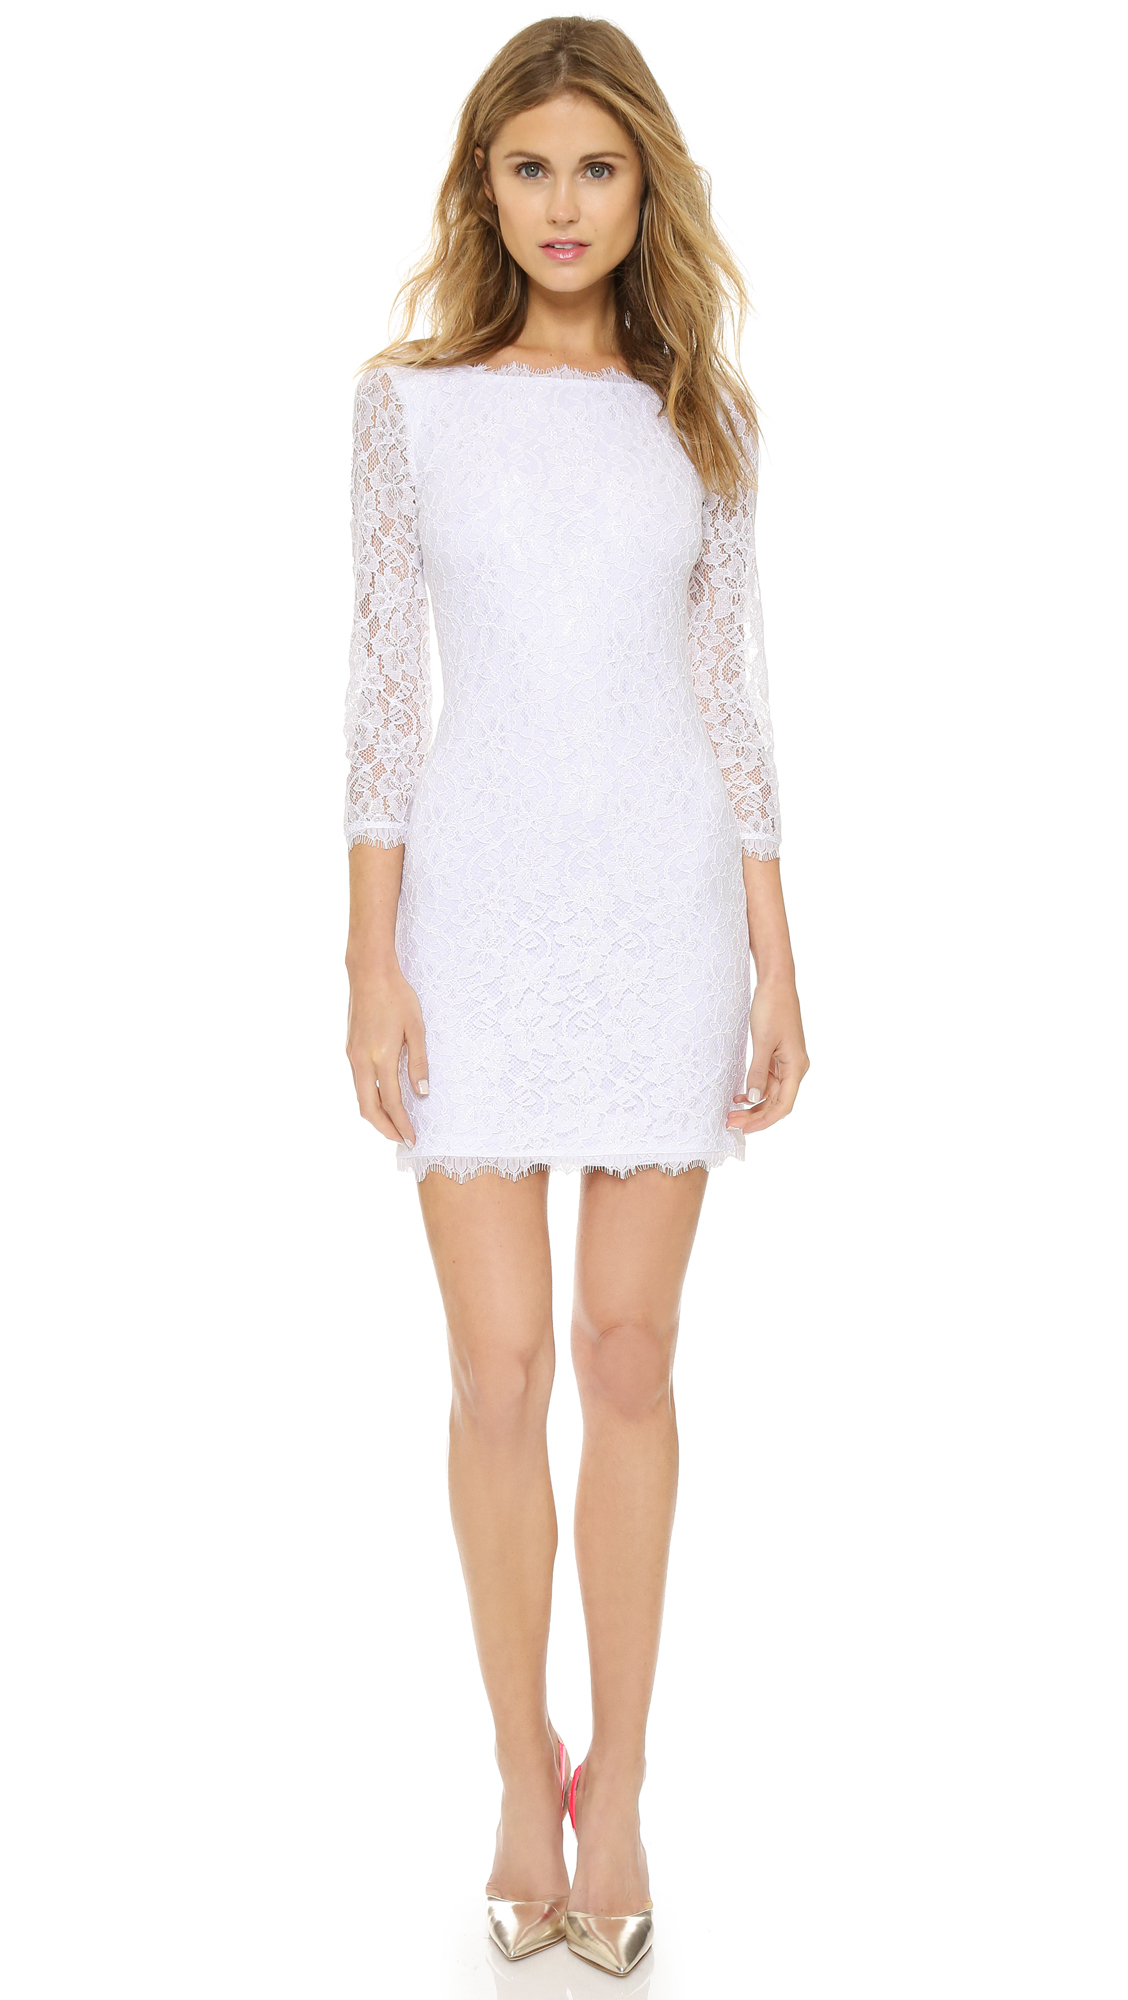 Diane von furstenberg zarita lace dress white in white for Diane von furstenberg clothes